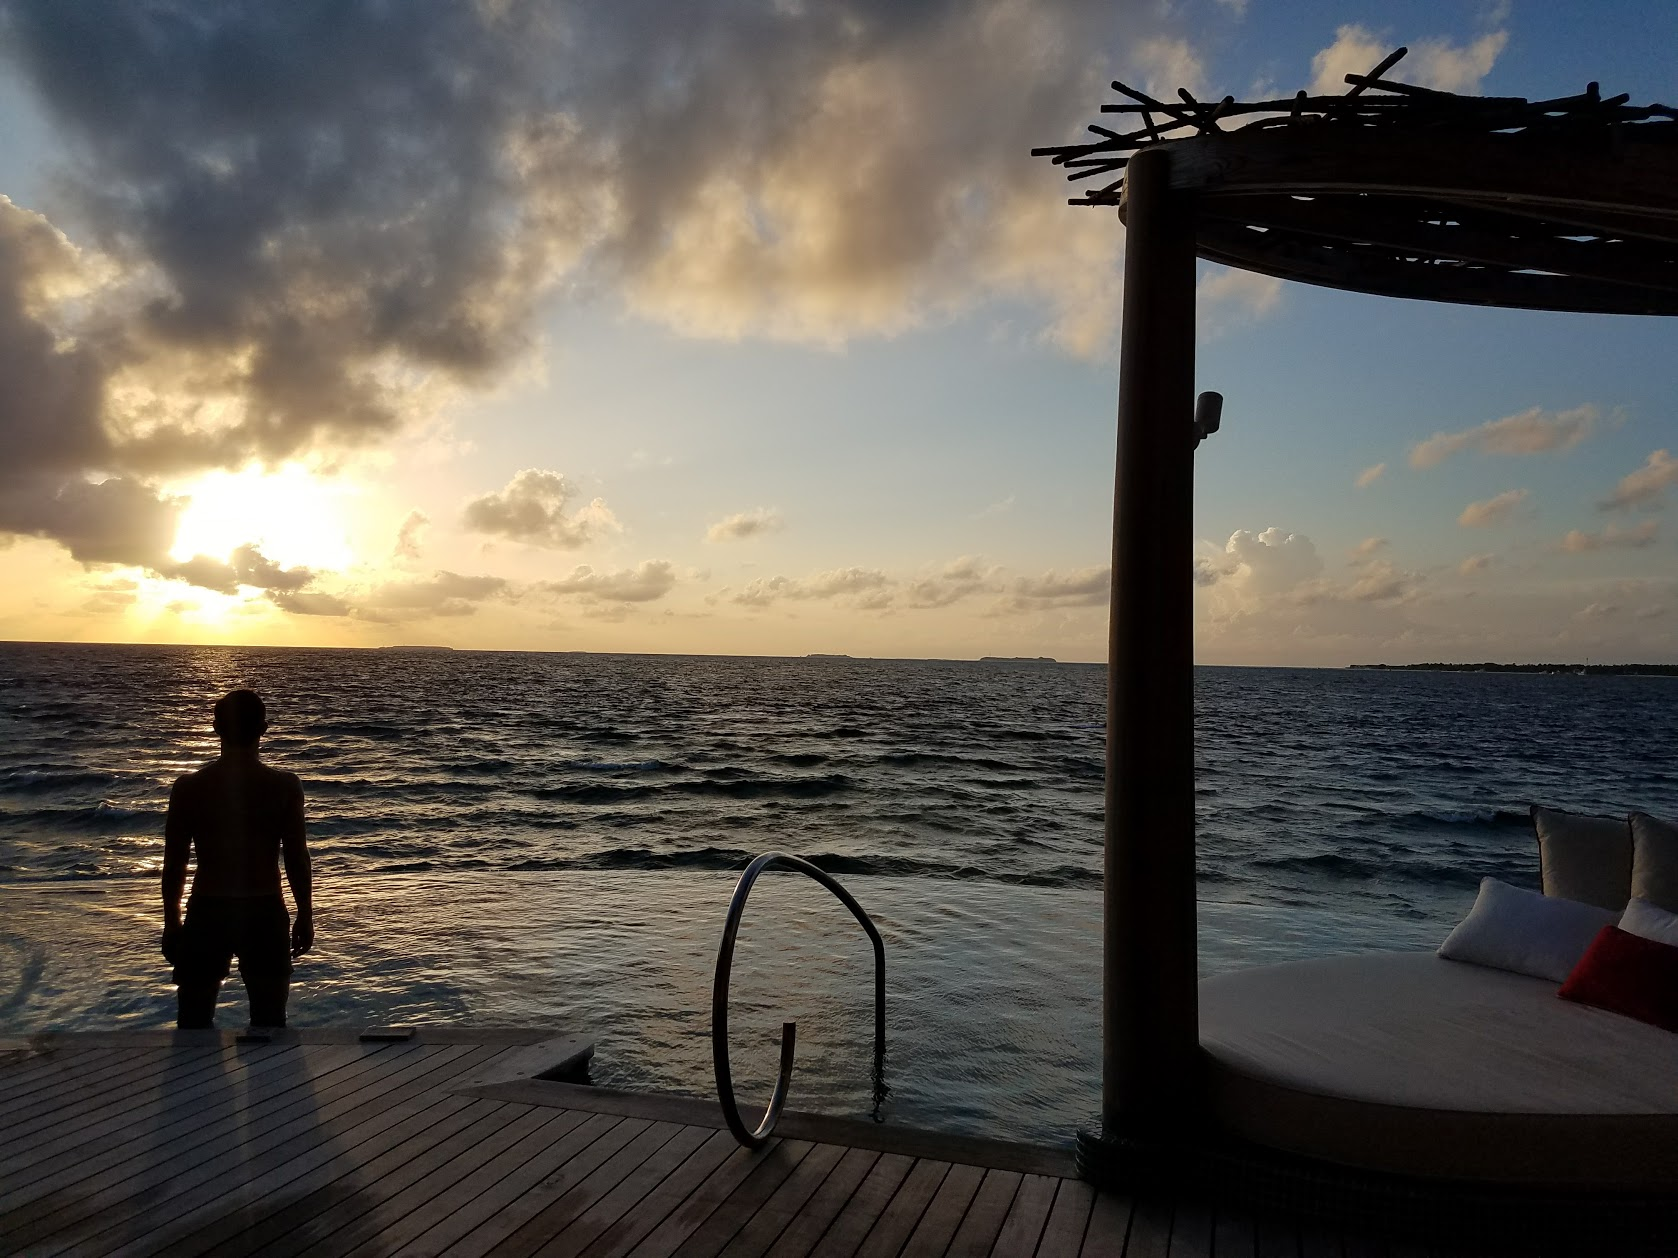 We're dolphin watching around sunset from our overwater villa.